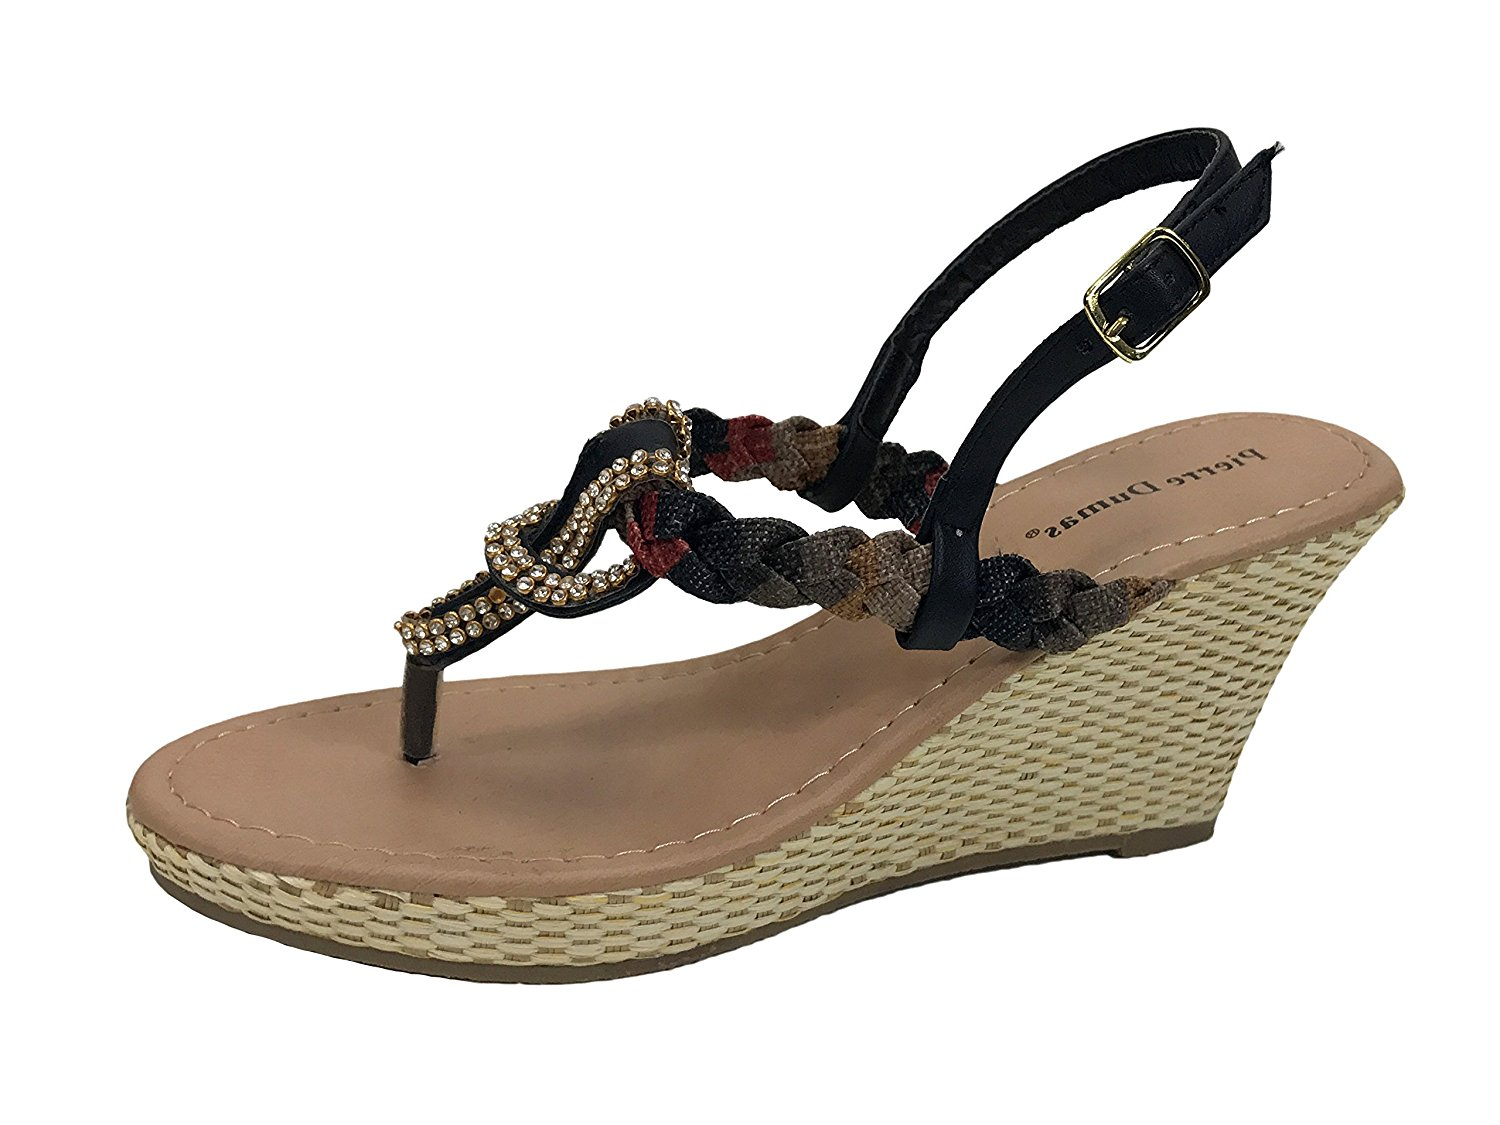 ed6a72f8d Get Quotations · Pierre Dumas 22318-555 Ivana Braided Embellished Wedge  Sandals